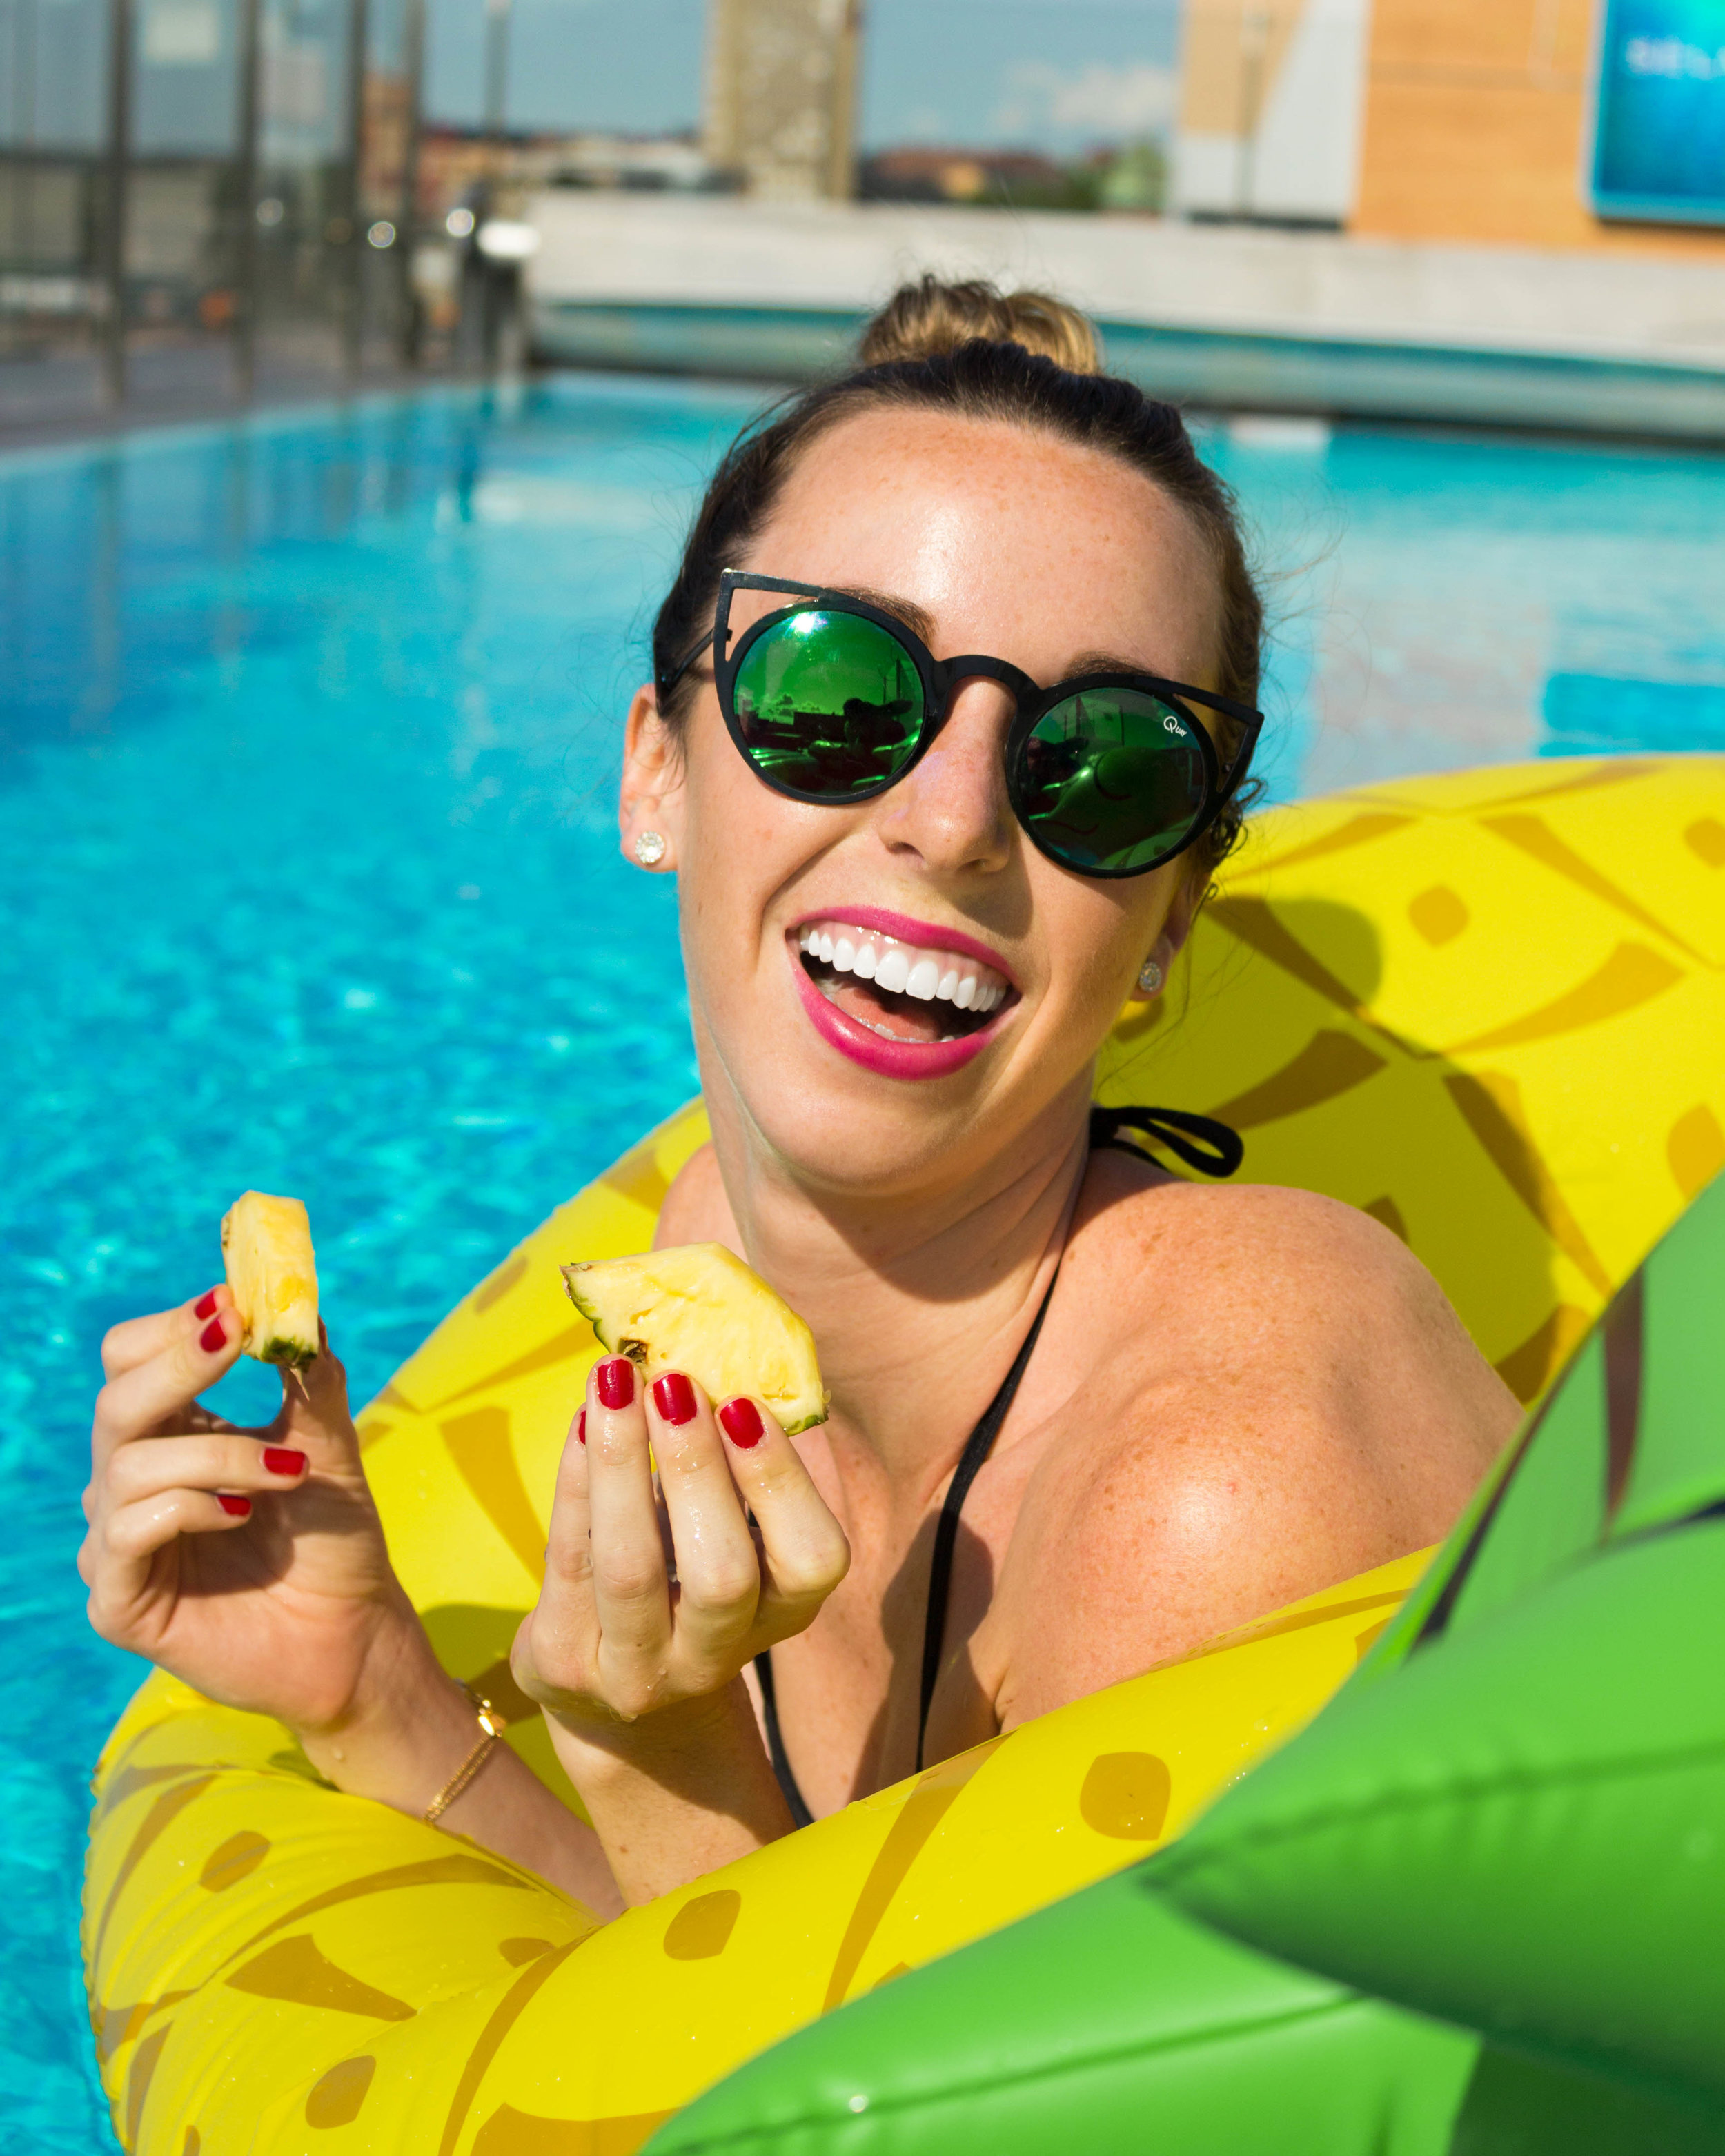 Eating pineapple while sitting in a pineapple floaty = living the dream!